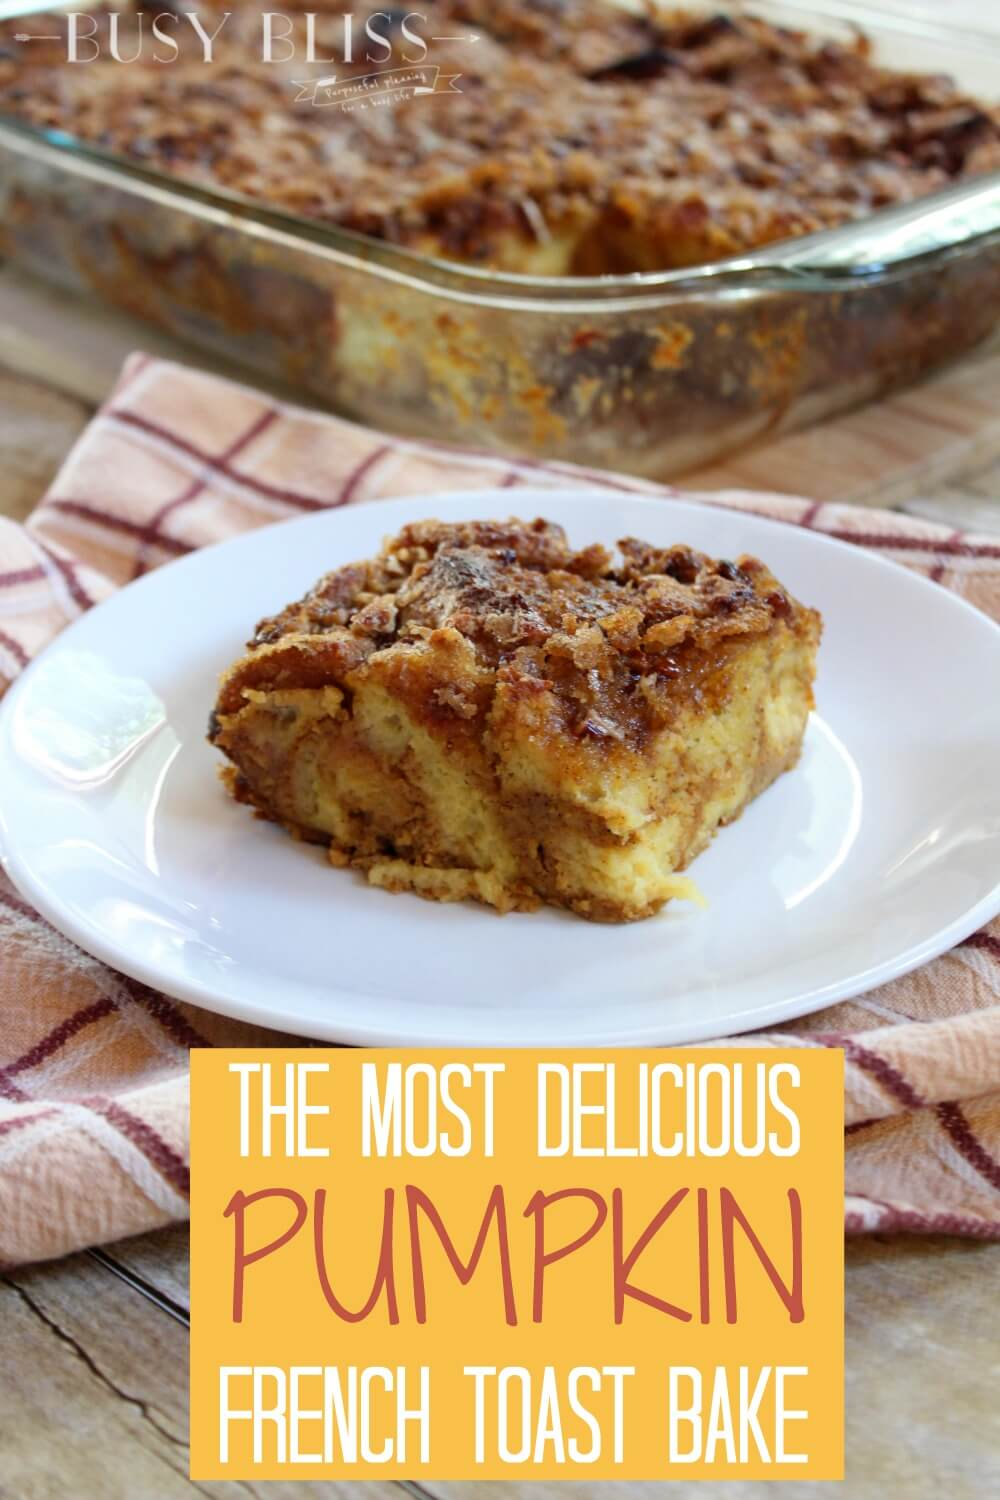 Overnight Pumpkin French Toast Bake with streusel topping is great for breakfast, brunch, or dessert.  If you're looking for easy recipes, you have to add this to your Fall menu!